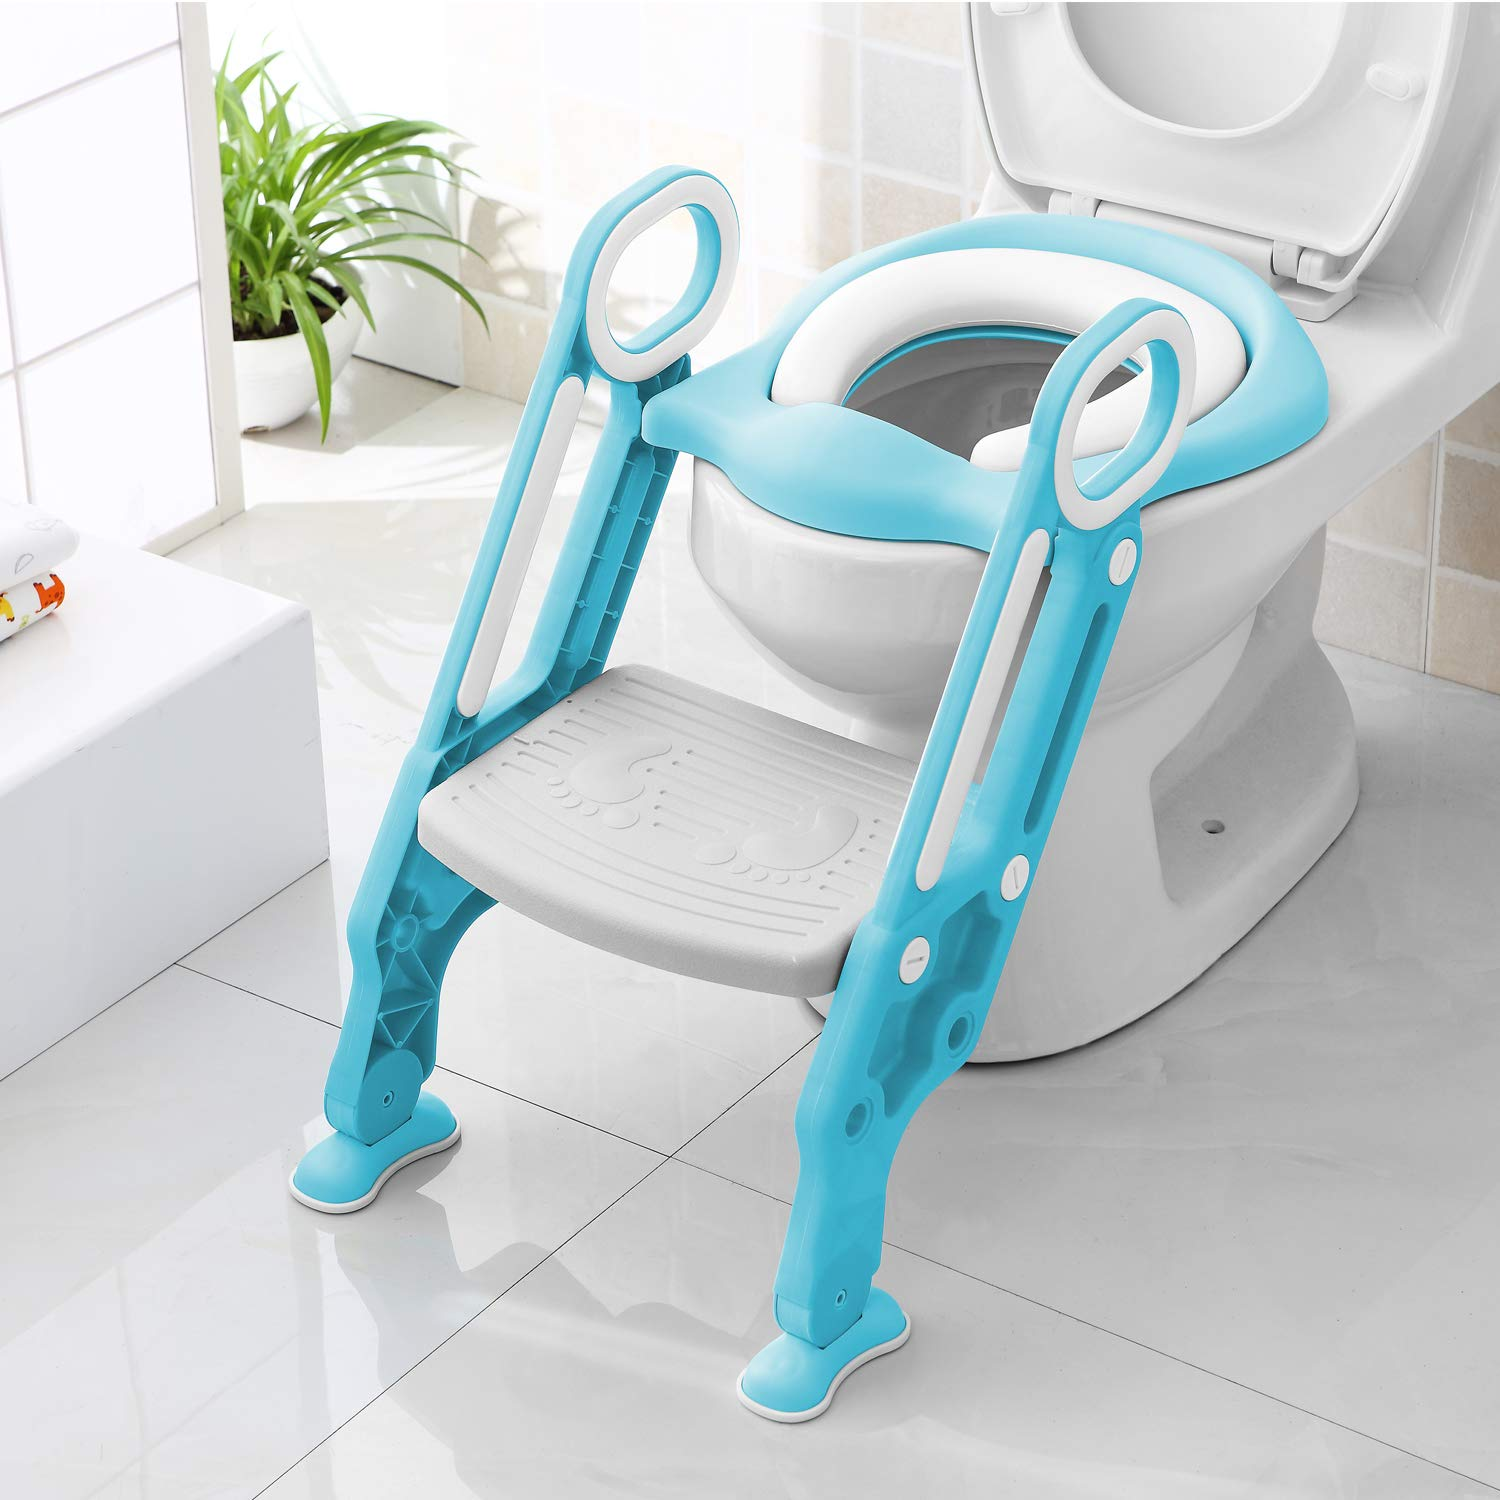 Bamny Potty Ladder - Toilet Step Ladder - Toddler Potty Training Ladder Seat Built in Sturdy Non-Slip Steps & Anti-Slip Pads Potty Step Ladder for Toddlers & Boys(Blue)